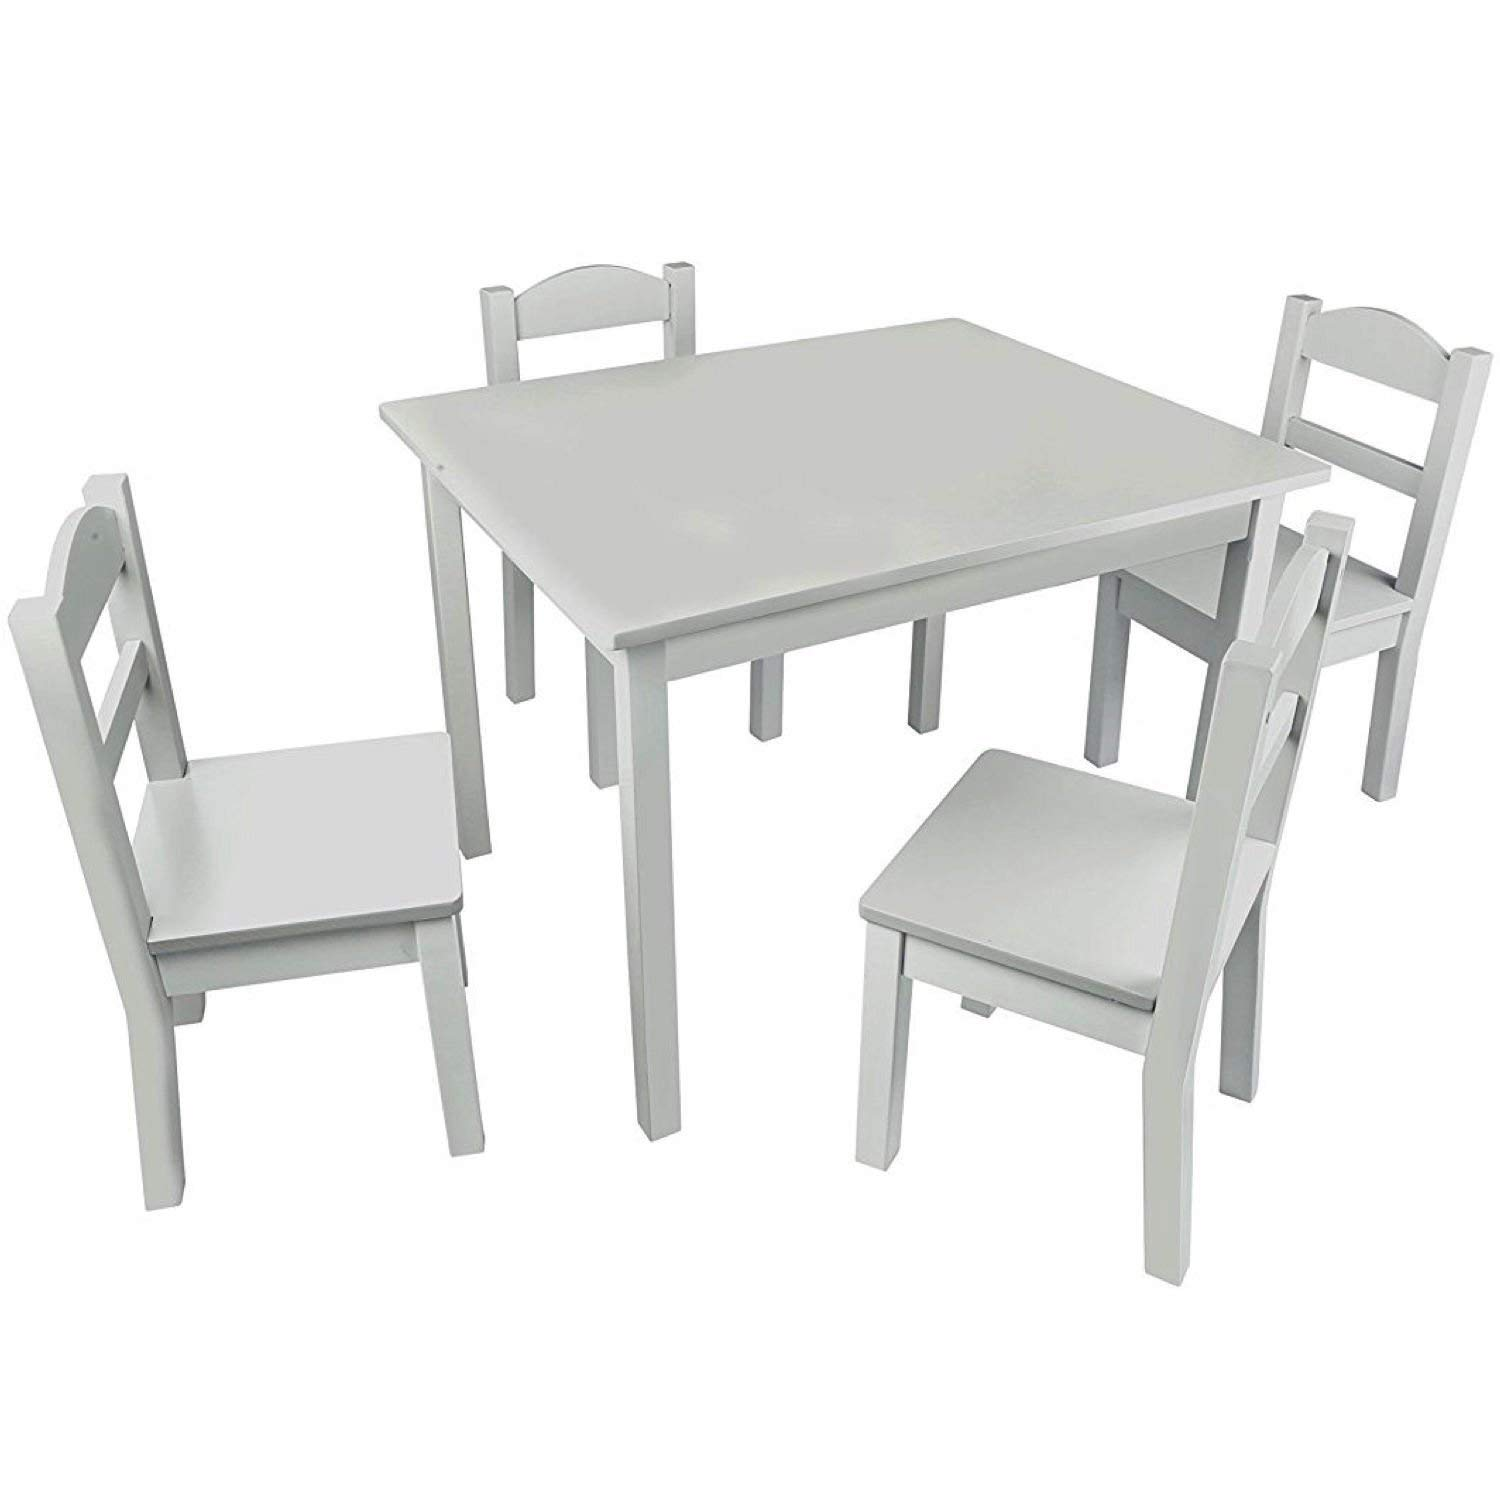 e0ffb3f0db6a Amazon.com  Pidoko Kids Table and Chairs Set Gray - 4 Chairs and 1 Activity  Table for Children - Educational Toddlers Furniture Set (Grey)  Kitchen    Dining